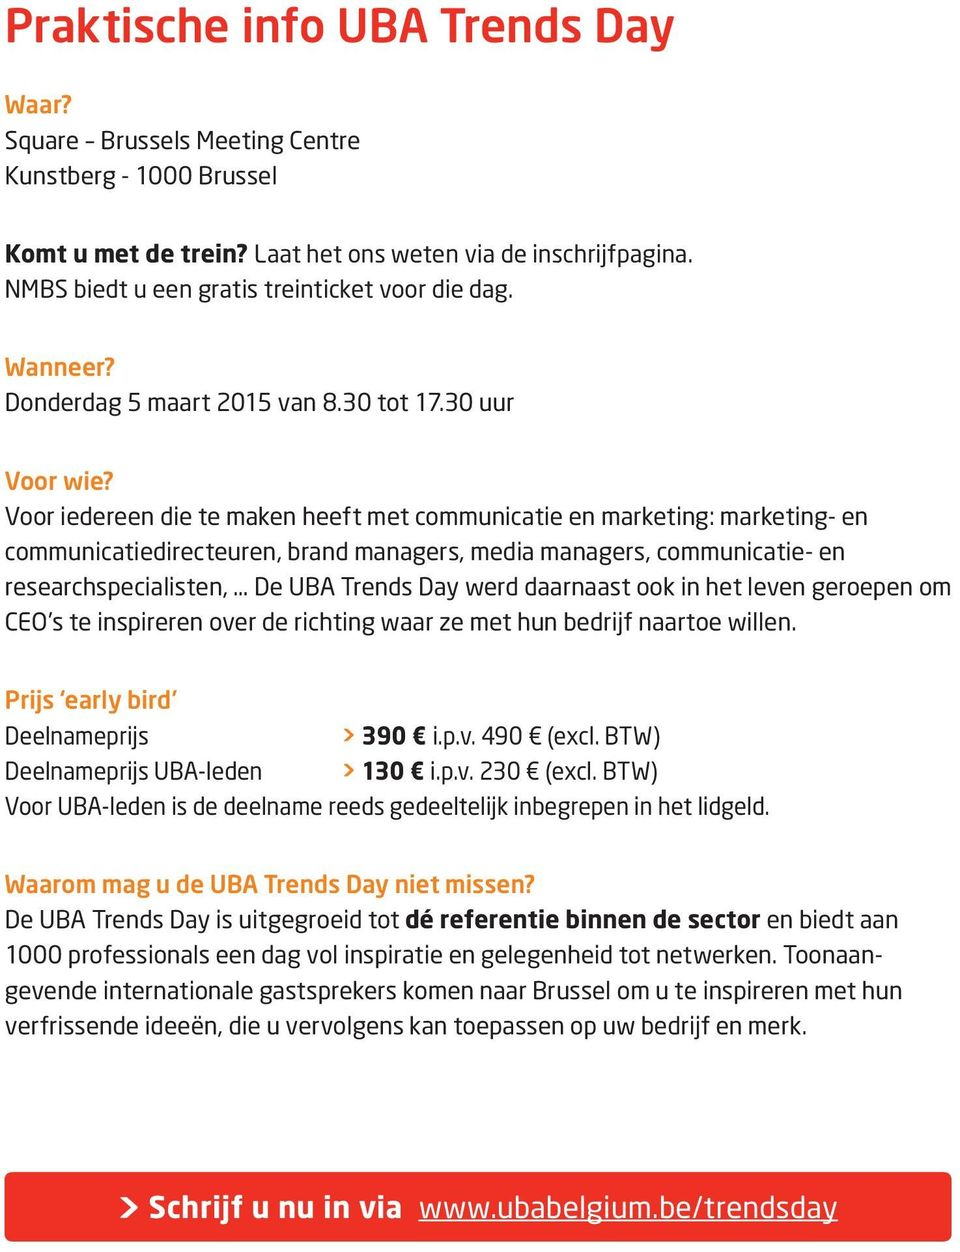 Voor iedereen die te maken heeft met communicatie en marketing: marketing- en communicatiedirecteuren, brand managers, media managers, communicatie- en researchspecialisten, De UBA Trends Day werd